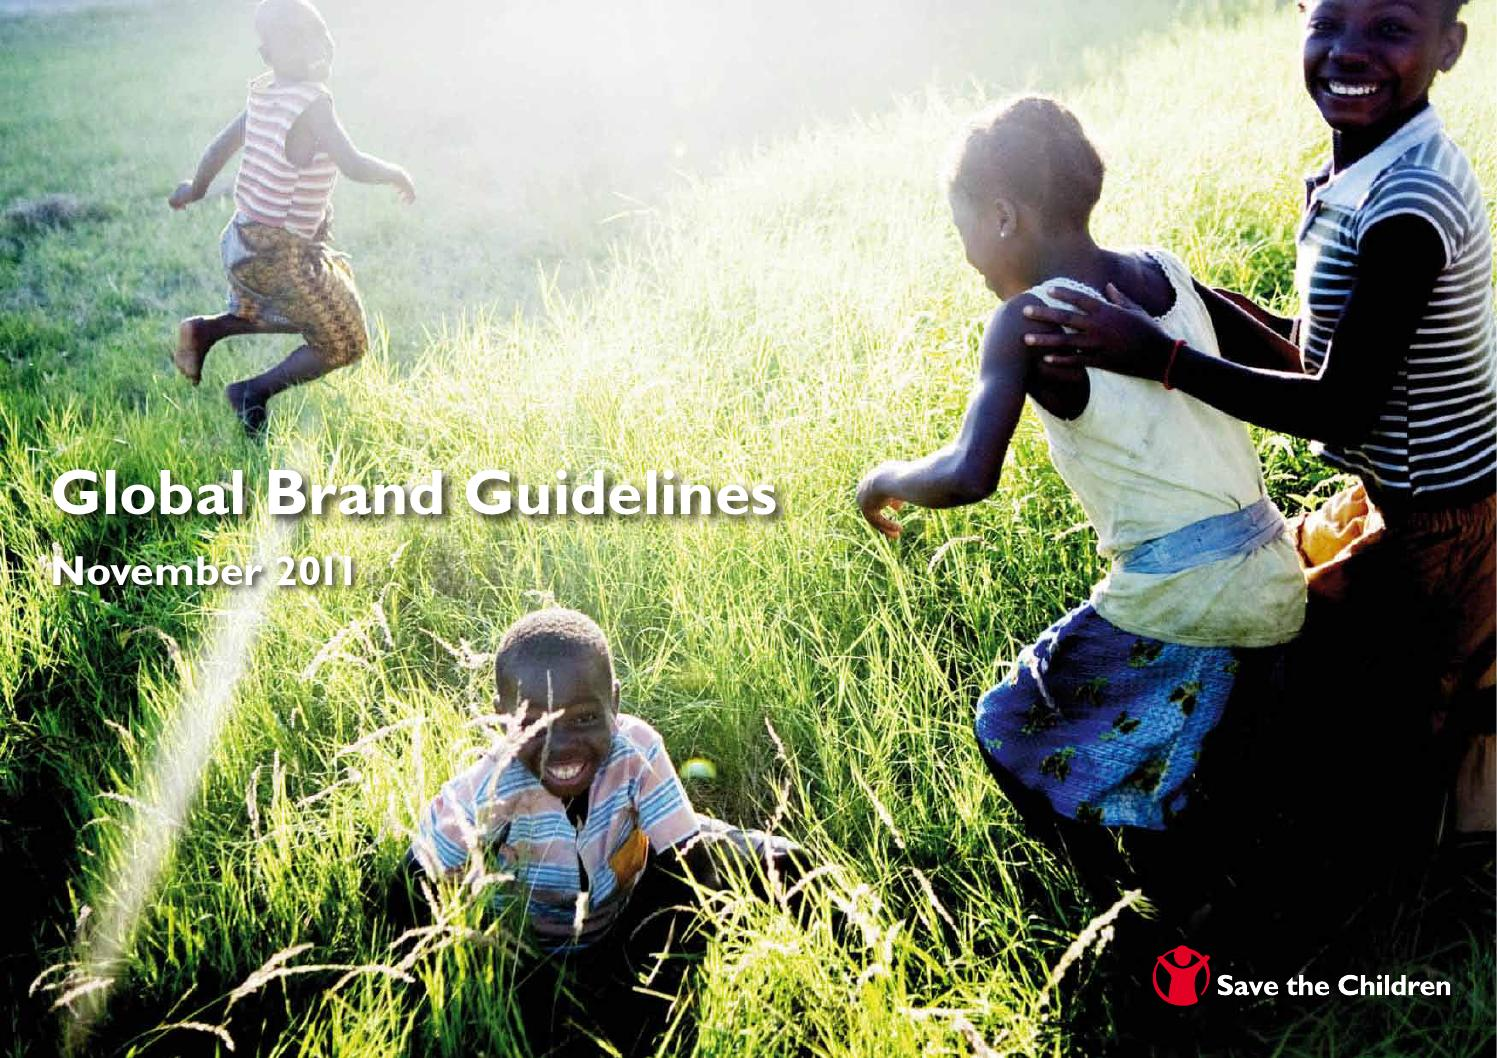 Save the Children global brand guidelines by Save the Children - issuu